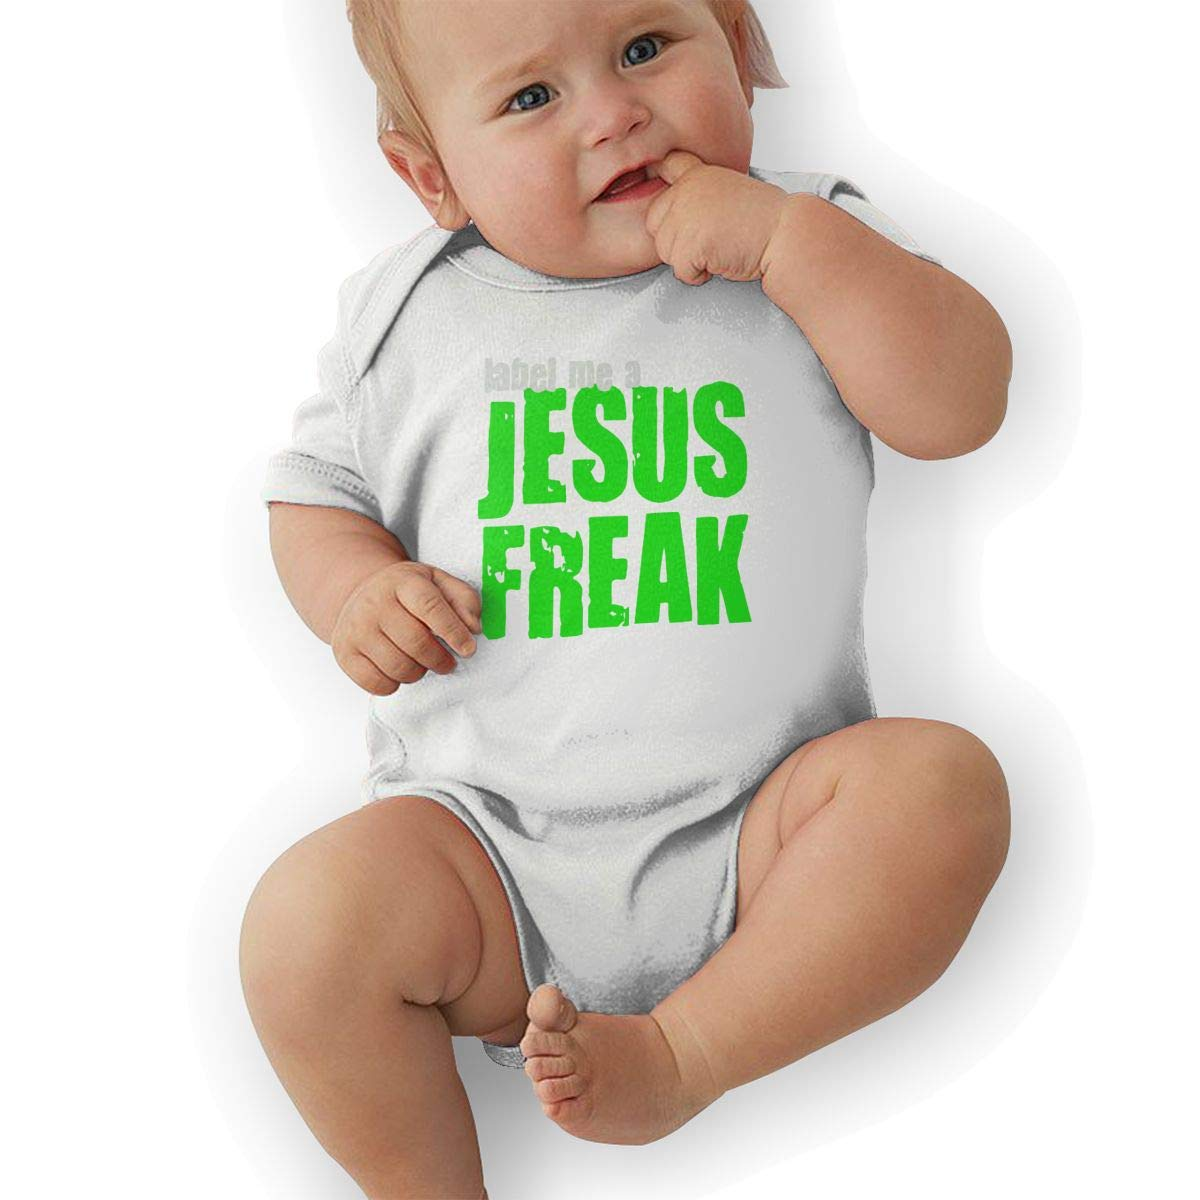 BONLOR Label Me A Jesus Freak Logo Baby Rompers One Piece Jumpsuits Summer Outfits Clothes White